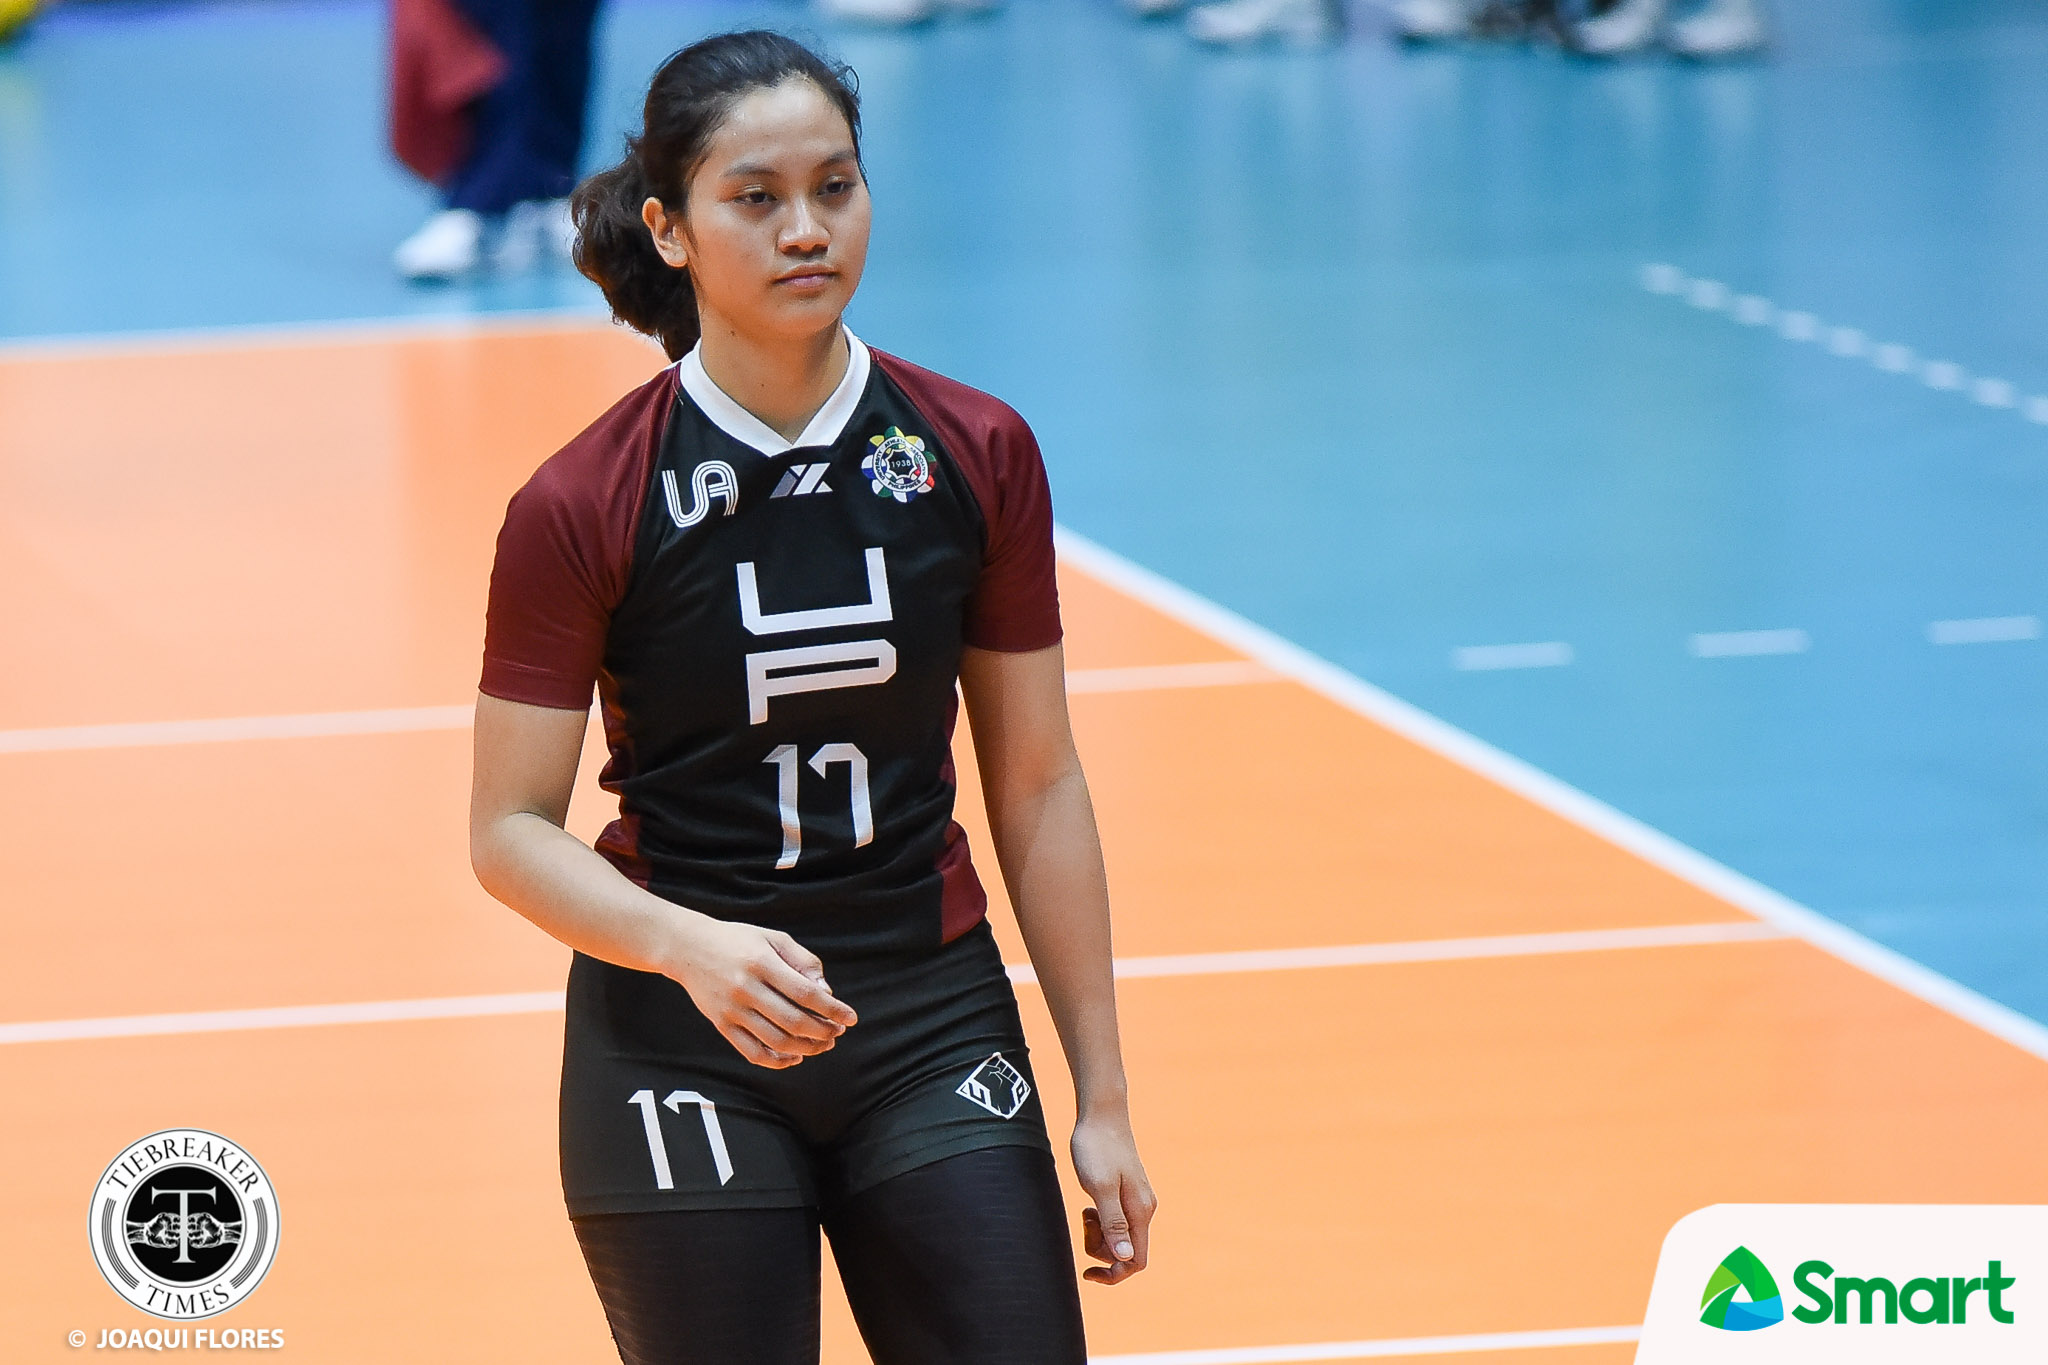 UAAP-80-VolleybalL-FEU-vs.-UP-Estranero-2438 Do-it-all Ayel Estrañero comes up clutch for Lady Maroons News UAAP UP Volleyball  - philippine sports news